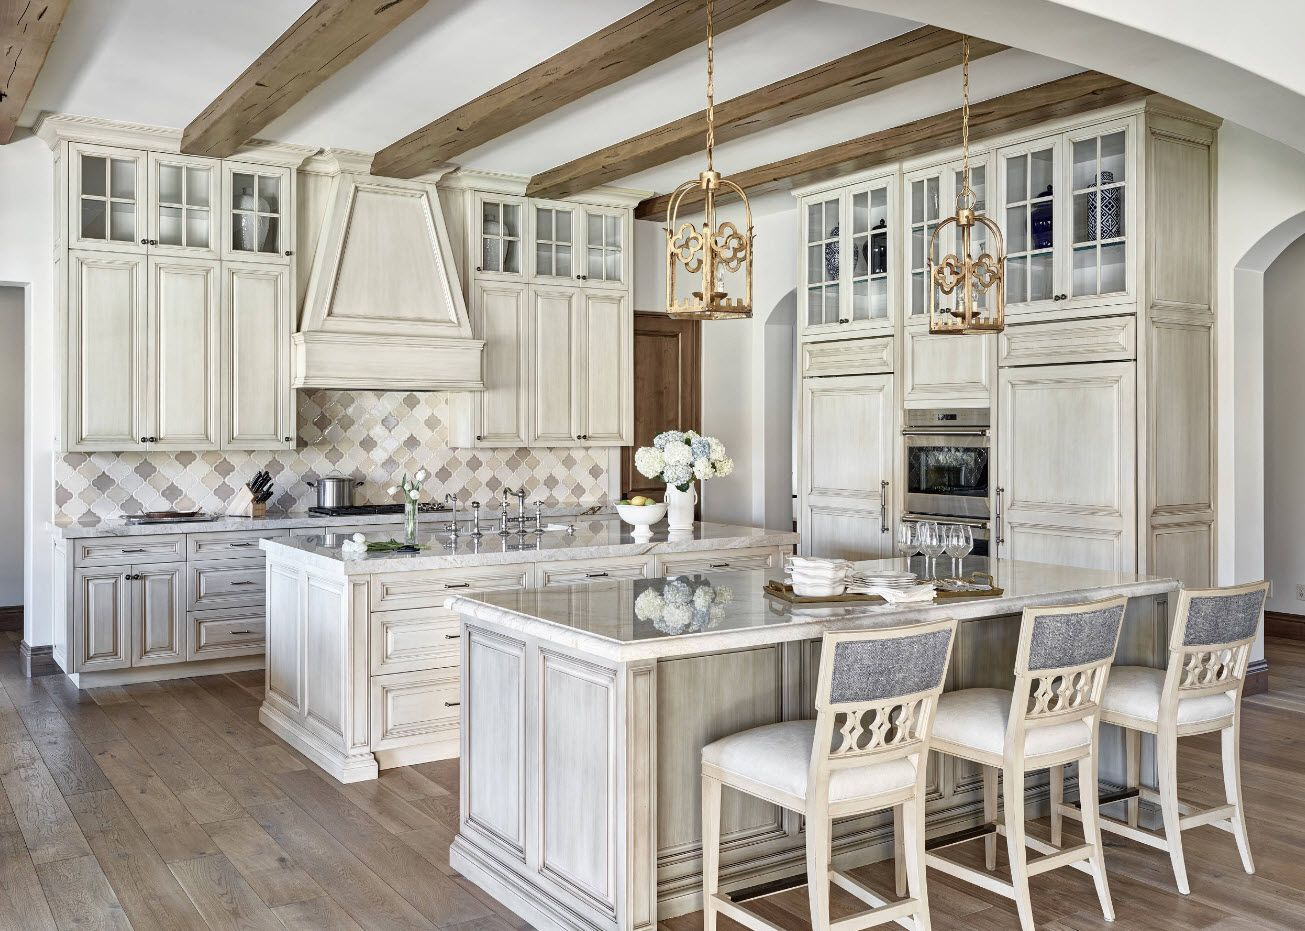 Provence style for the private house's white kitchen